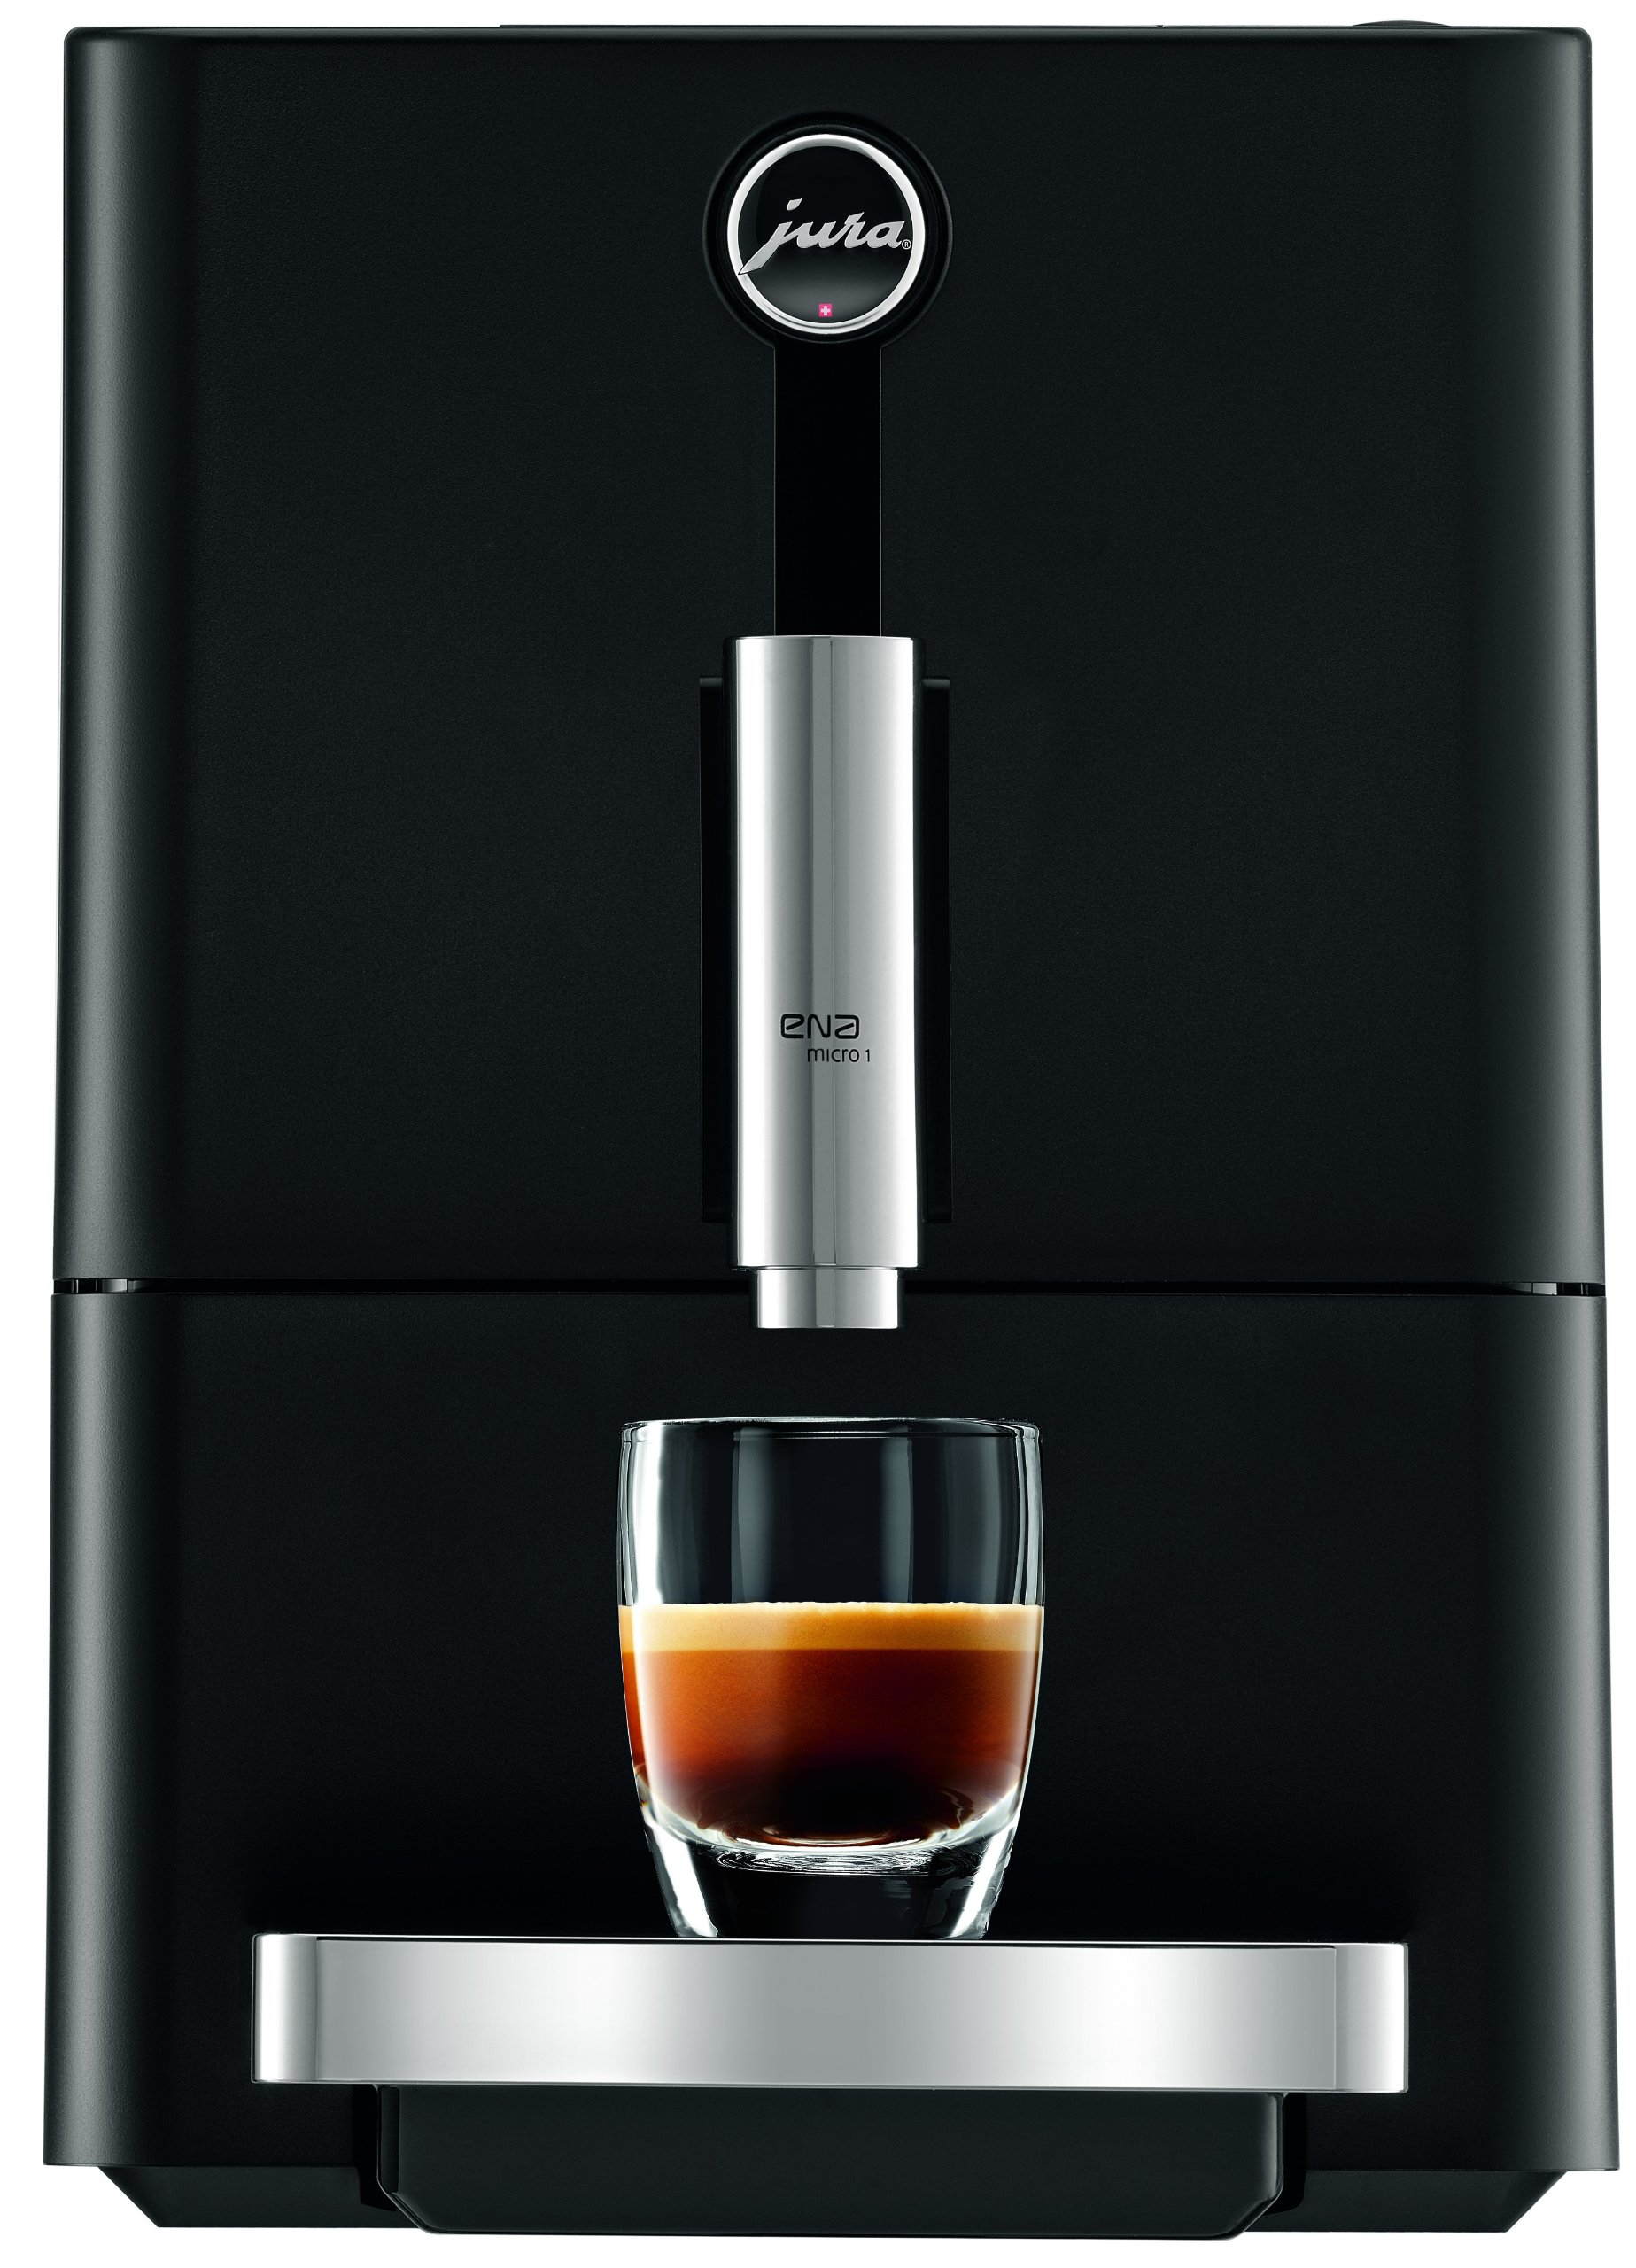 Jura 13626 ENA 1 Automatic Coffee Machine, 1, Micro Black by Jura